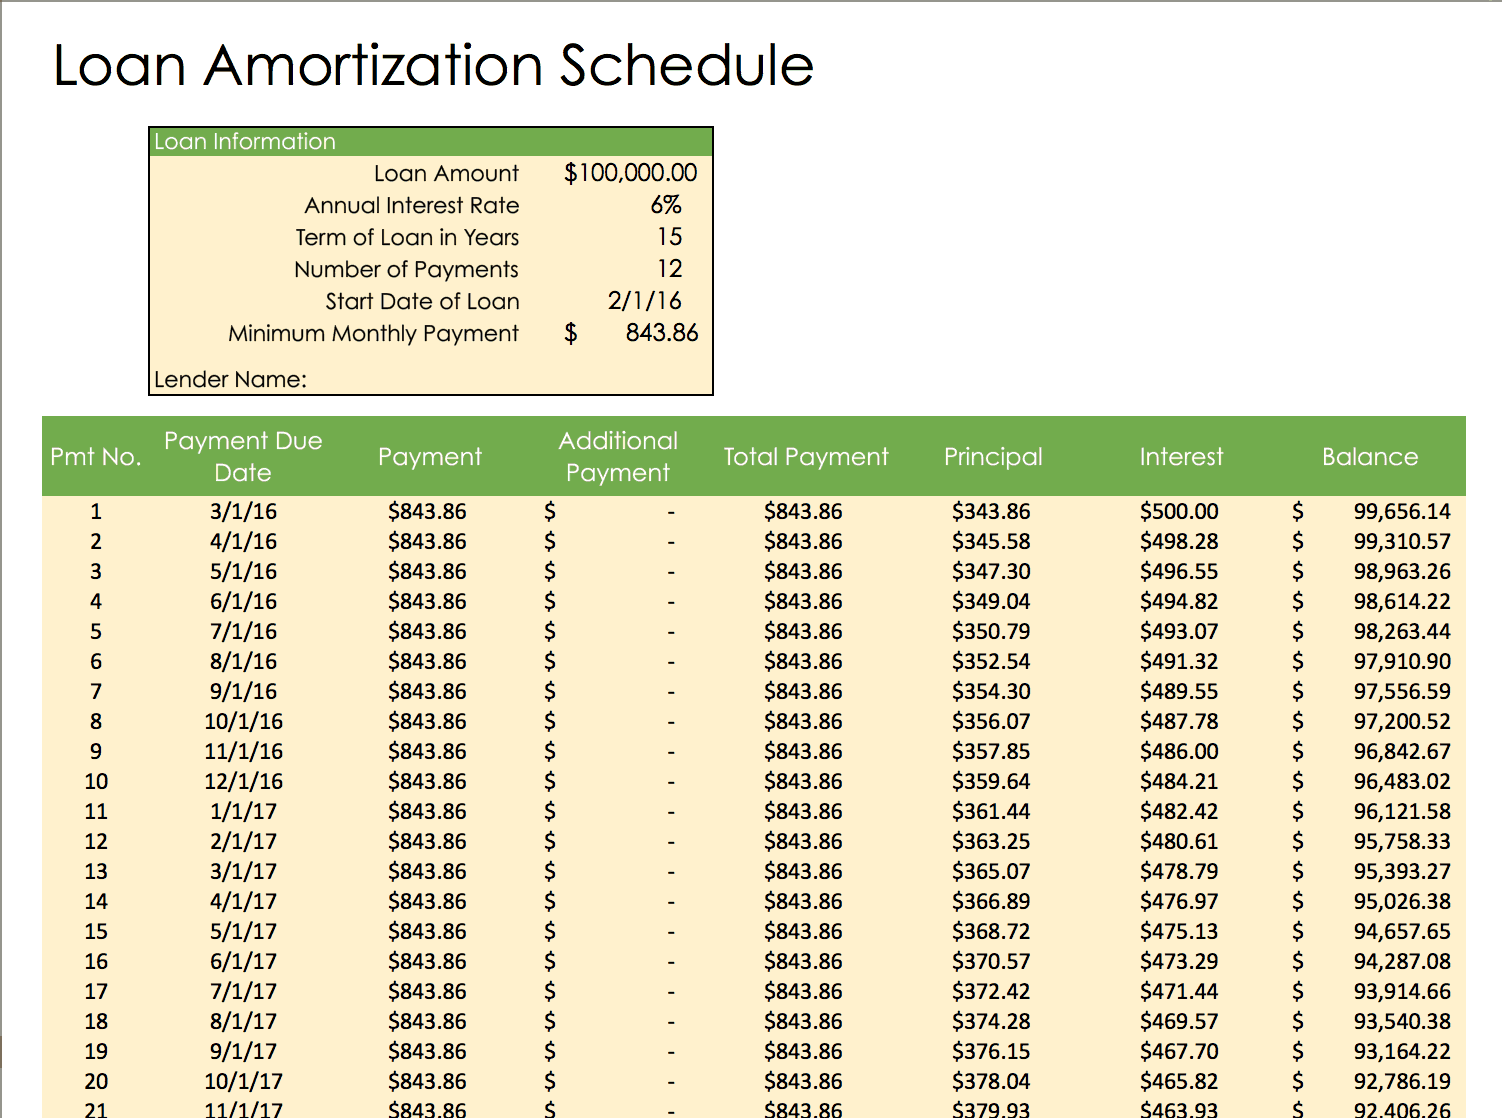 loan amortization schedule template - 57 Microsoft Word Business Plan Templates Entire